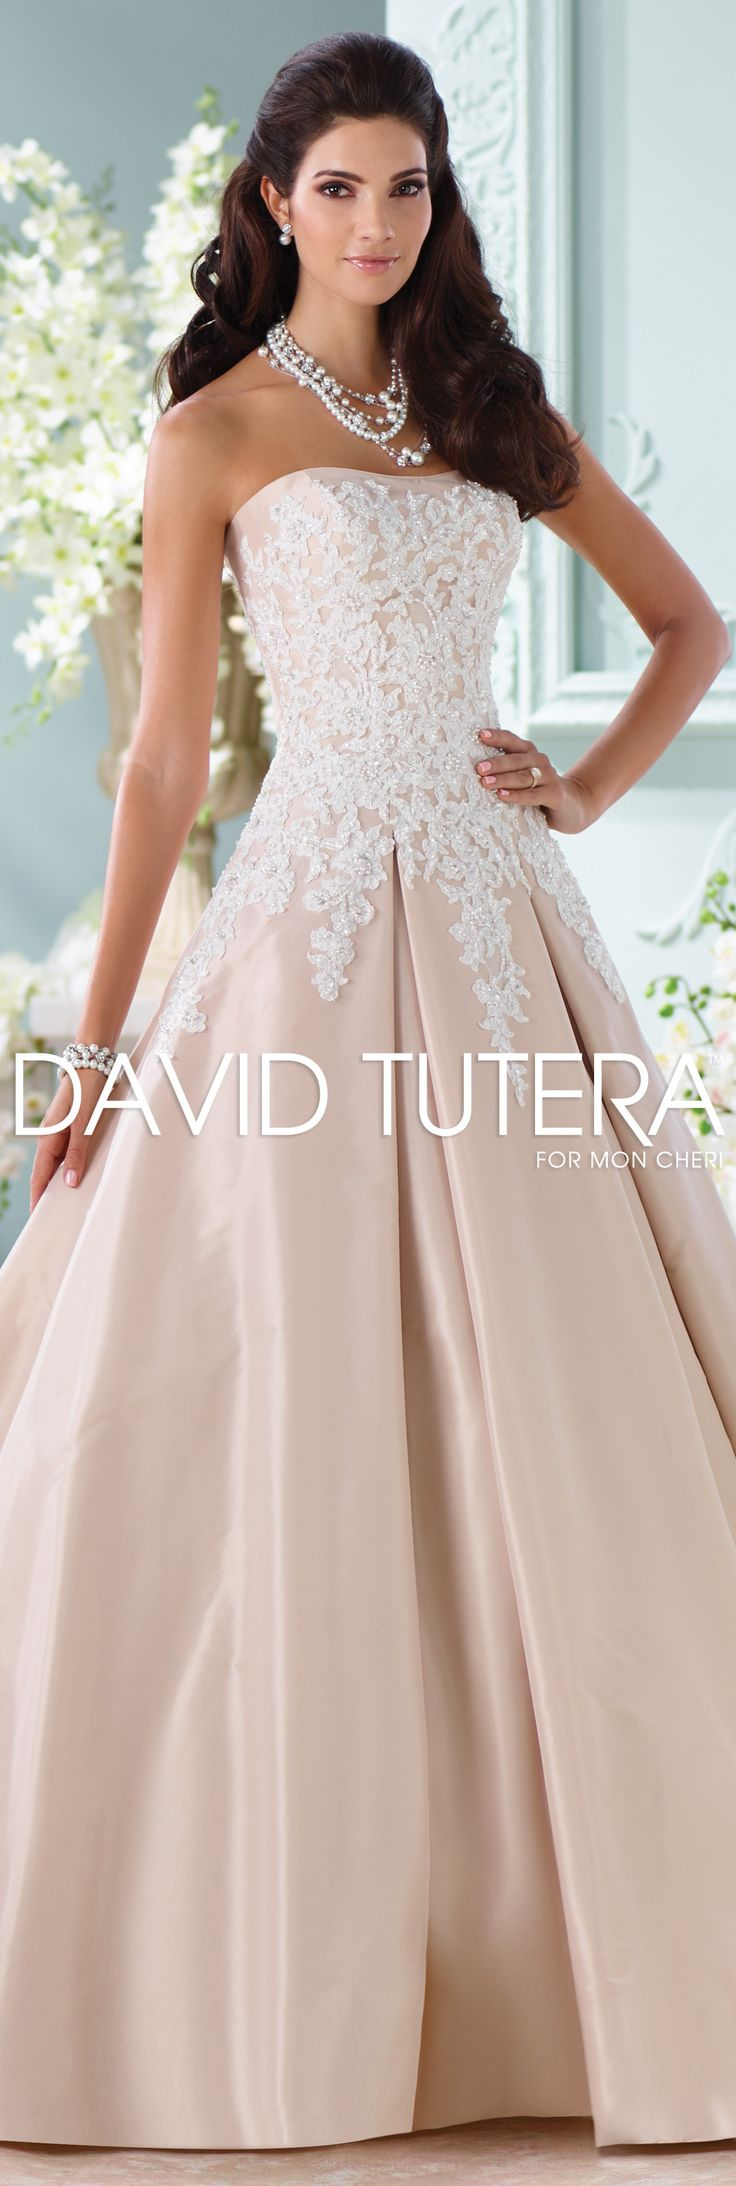 Best David Tutera Images On Pinterest Wedding Dressses